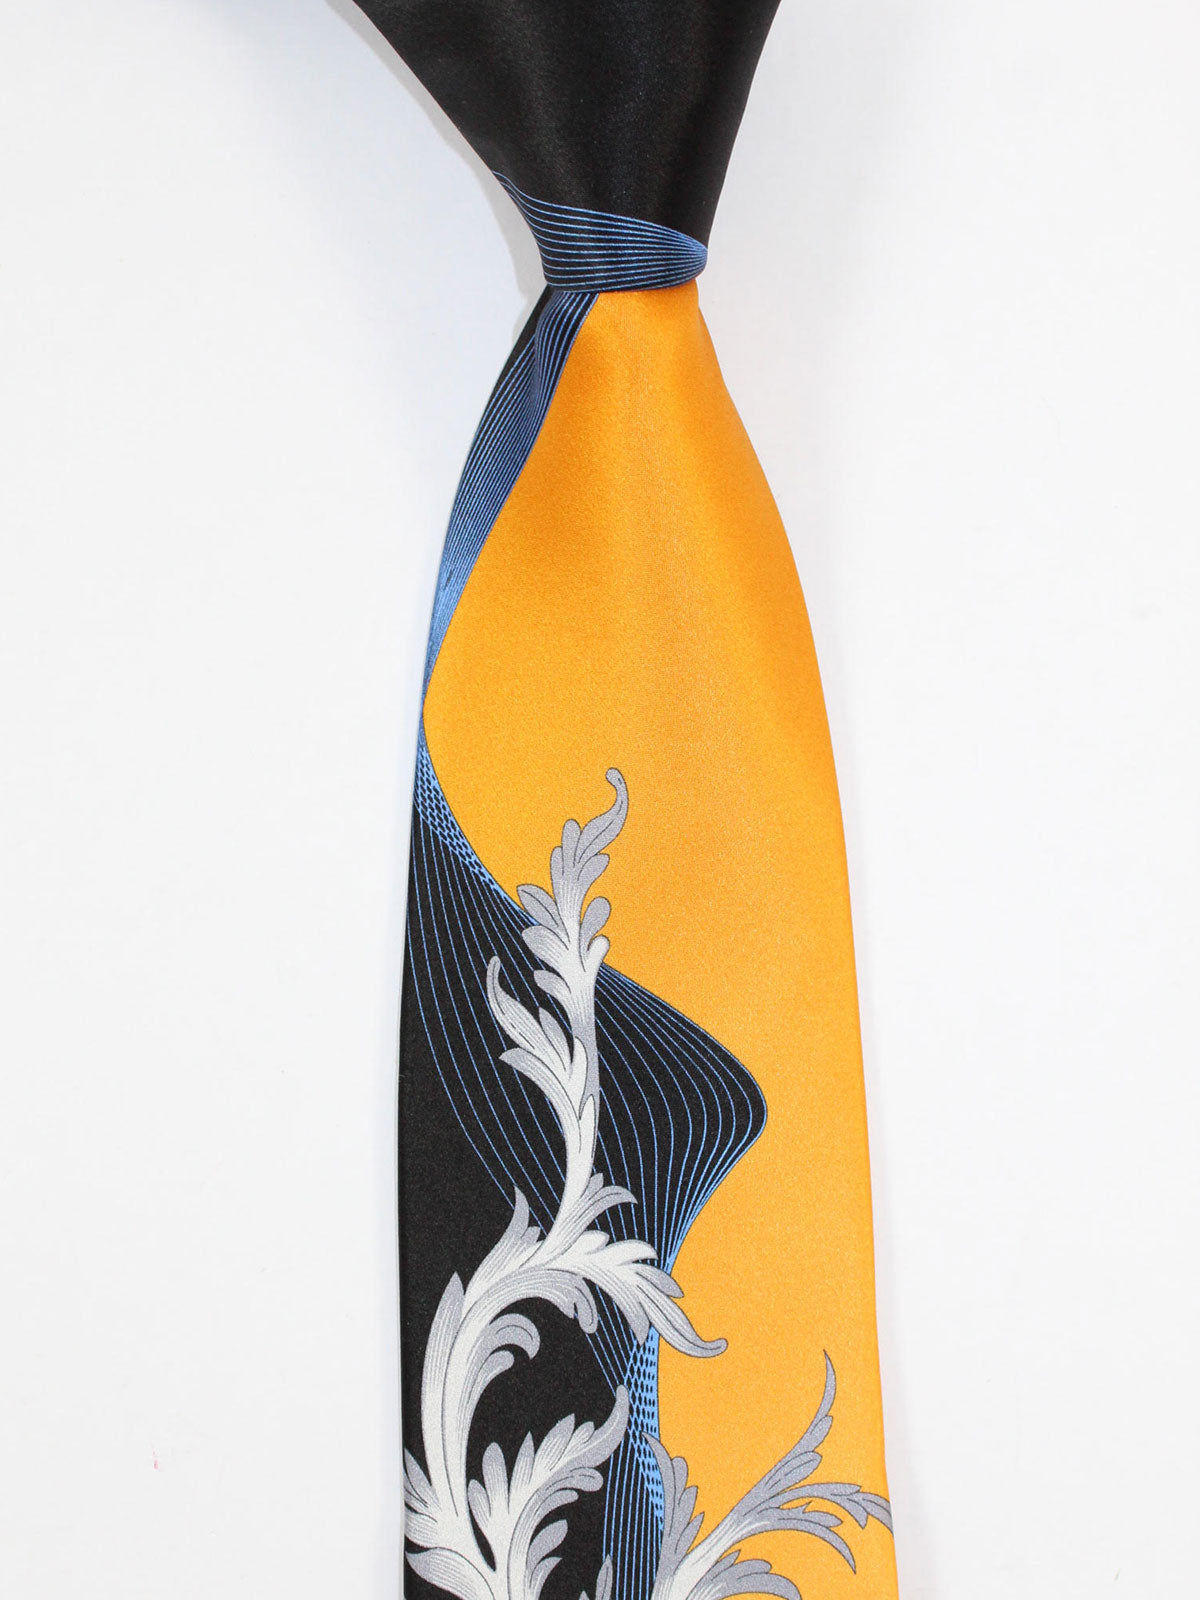 Vitaliano Pancaldi Tie Orange Gray Black Blue Ornamental